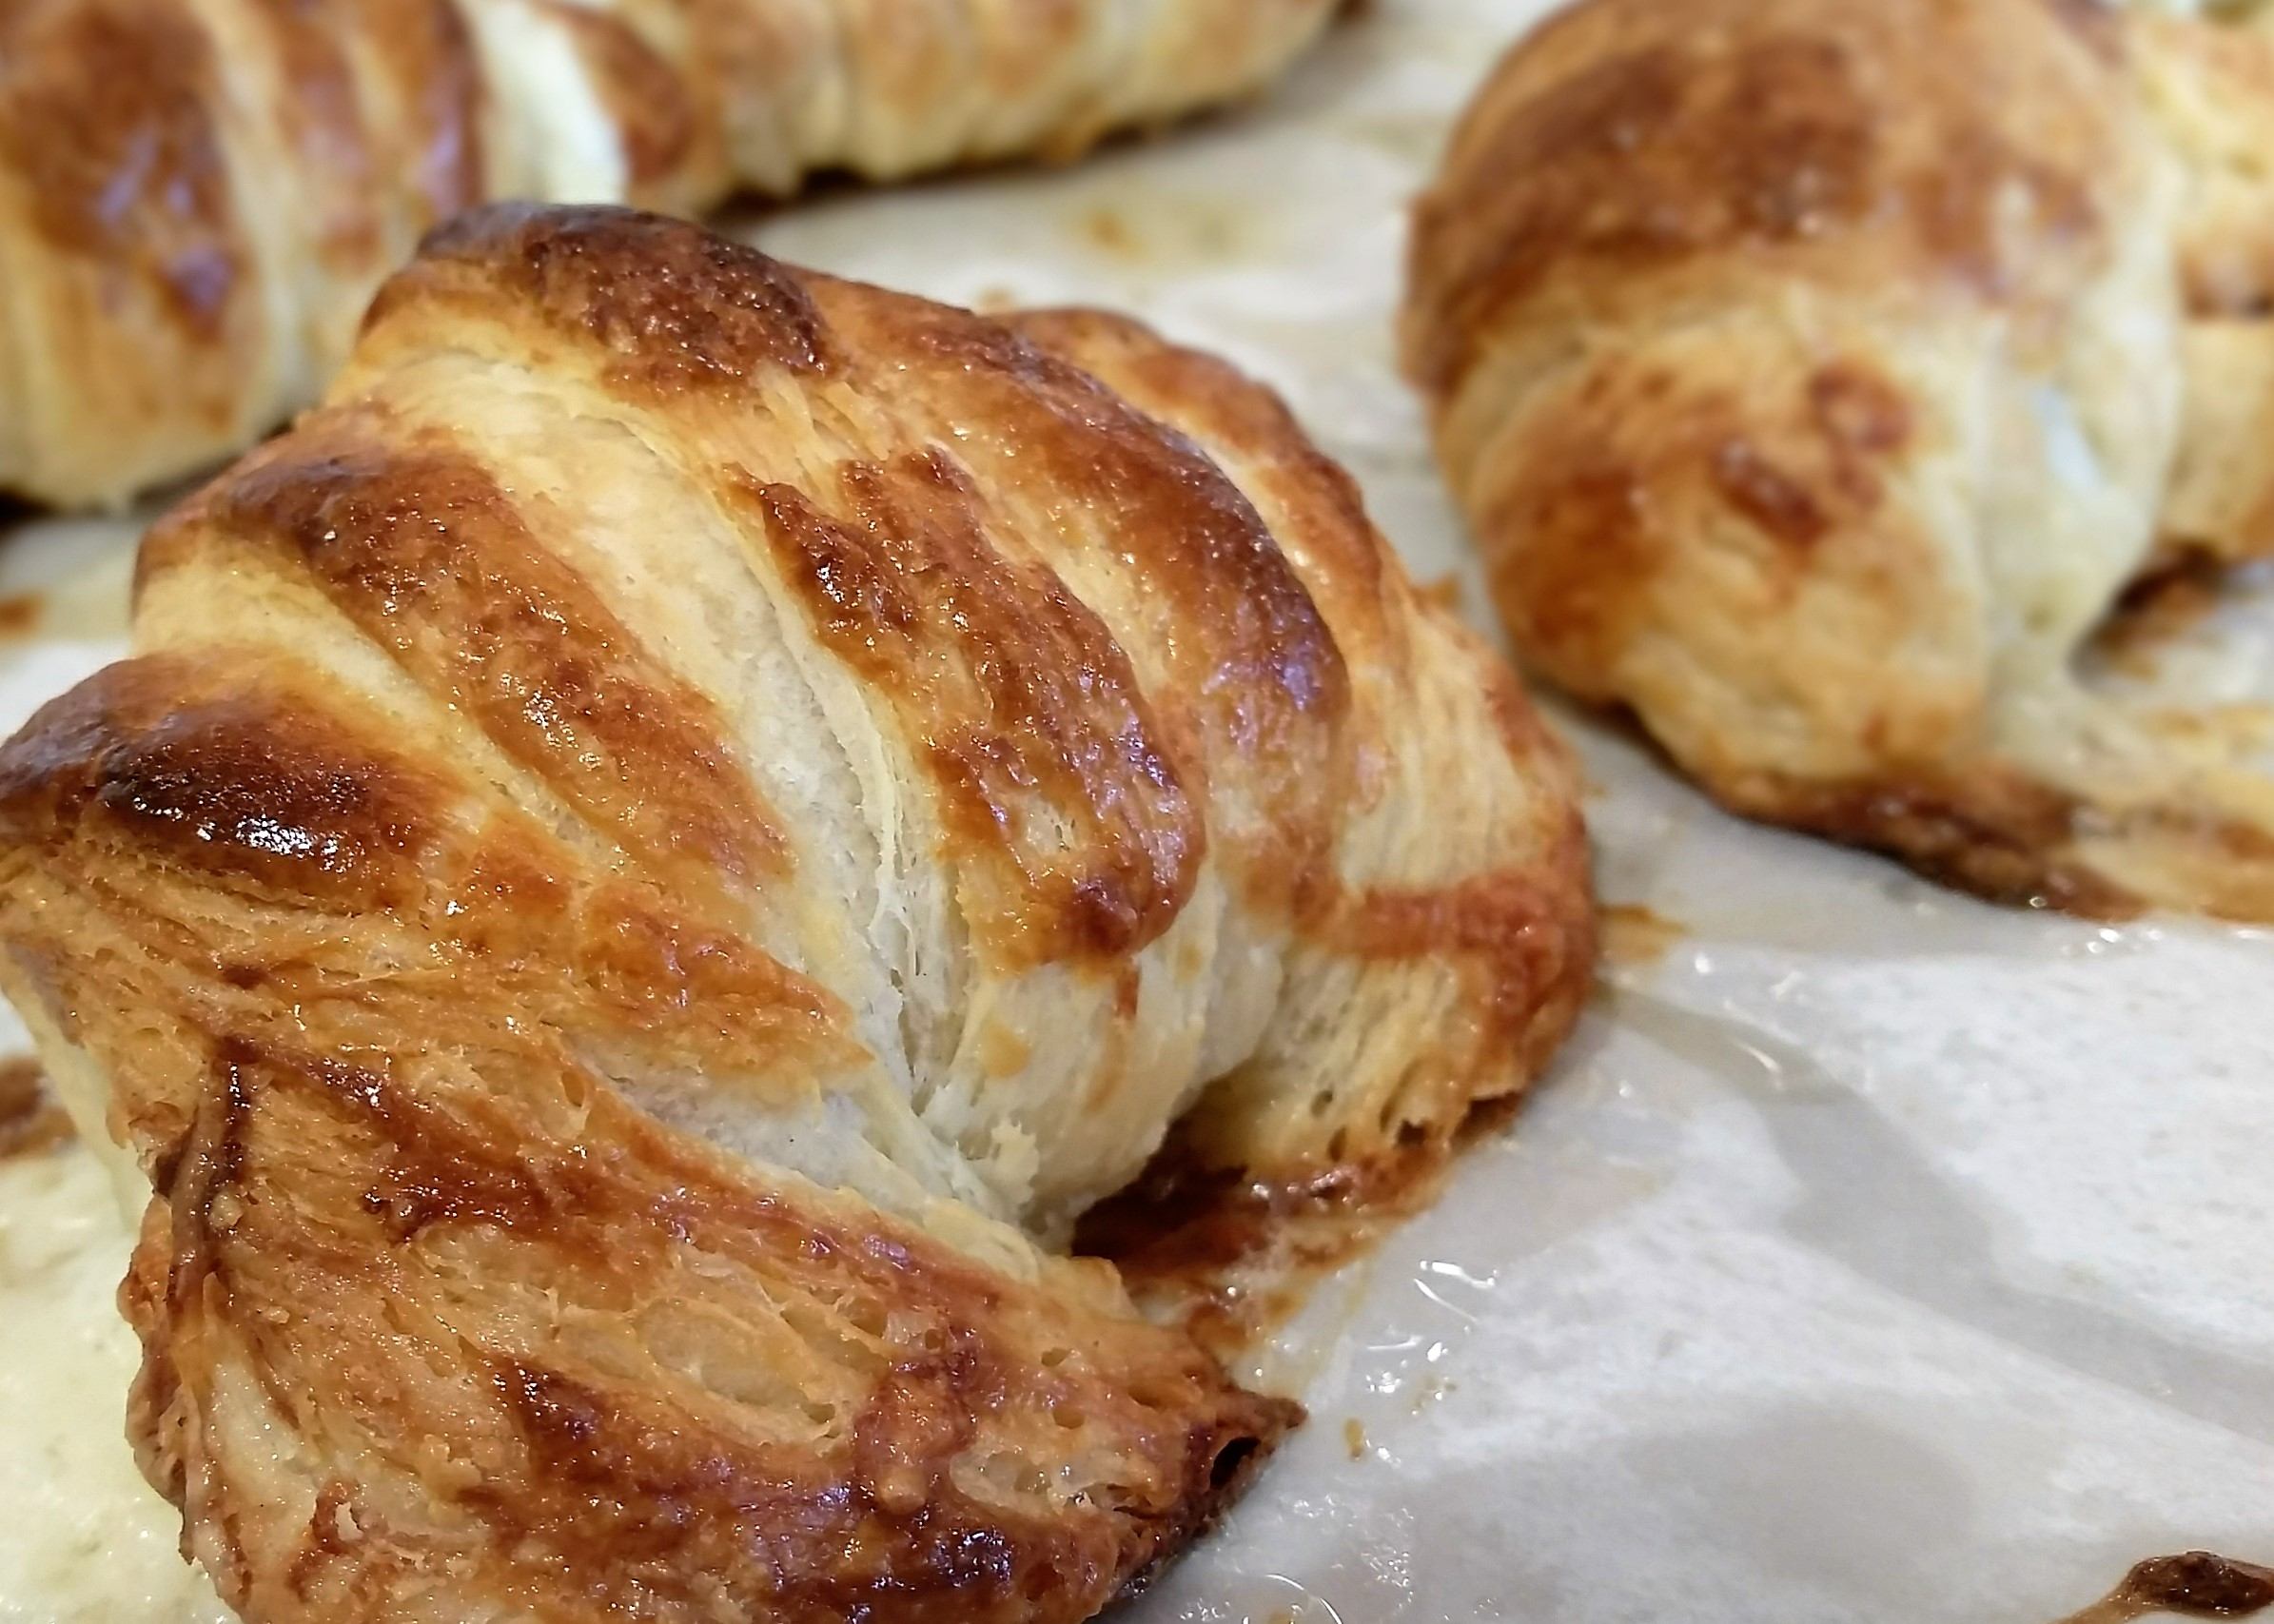 buttery-croissant-out-of-the-oven